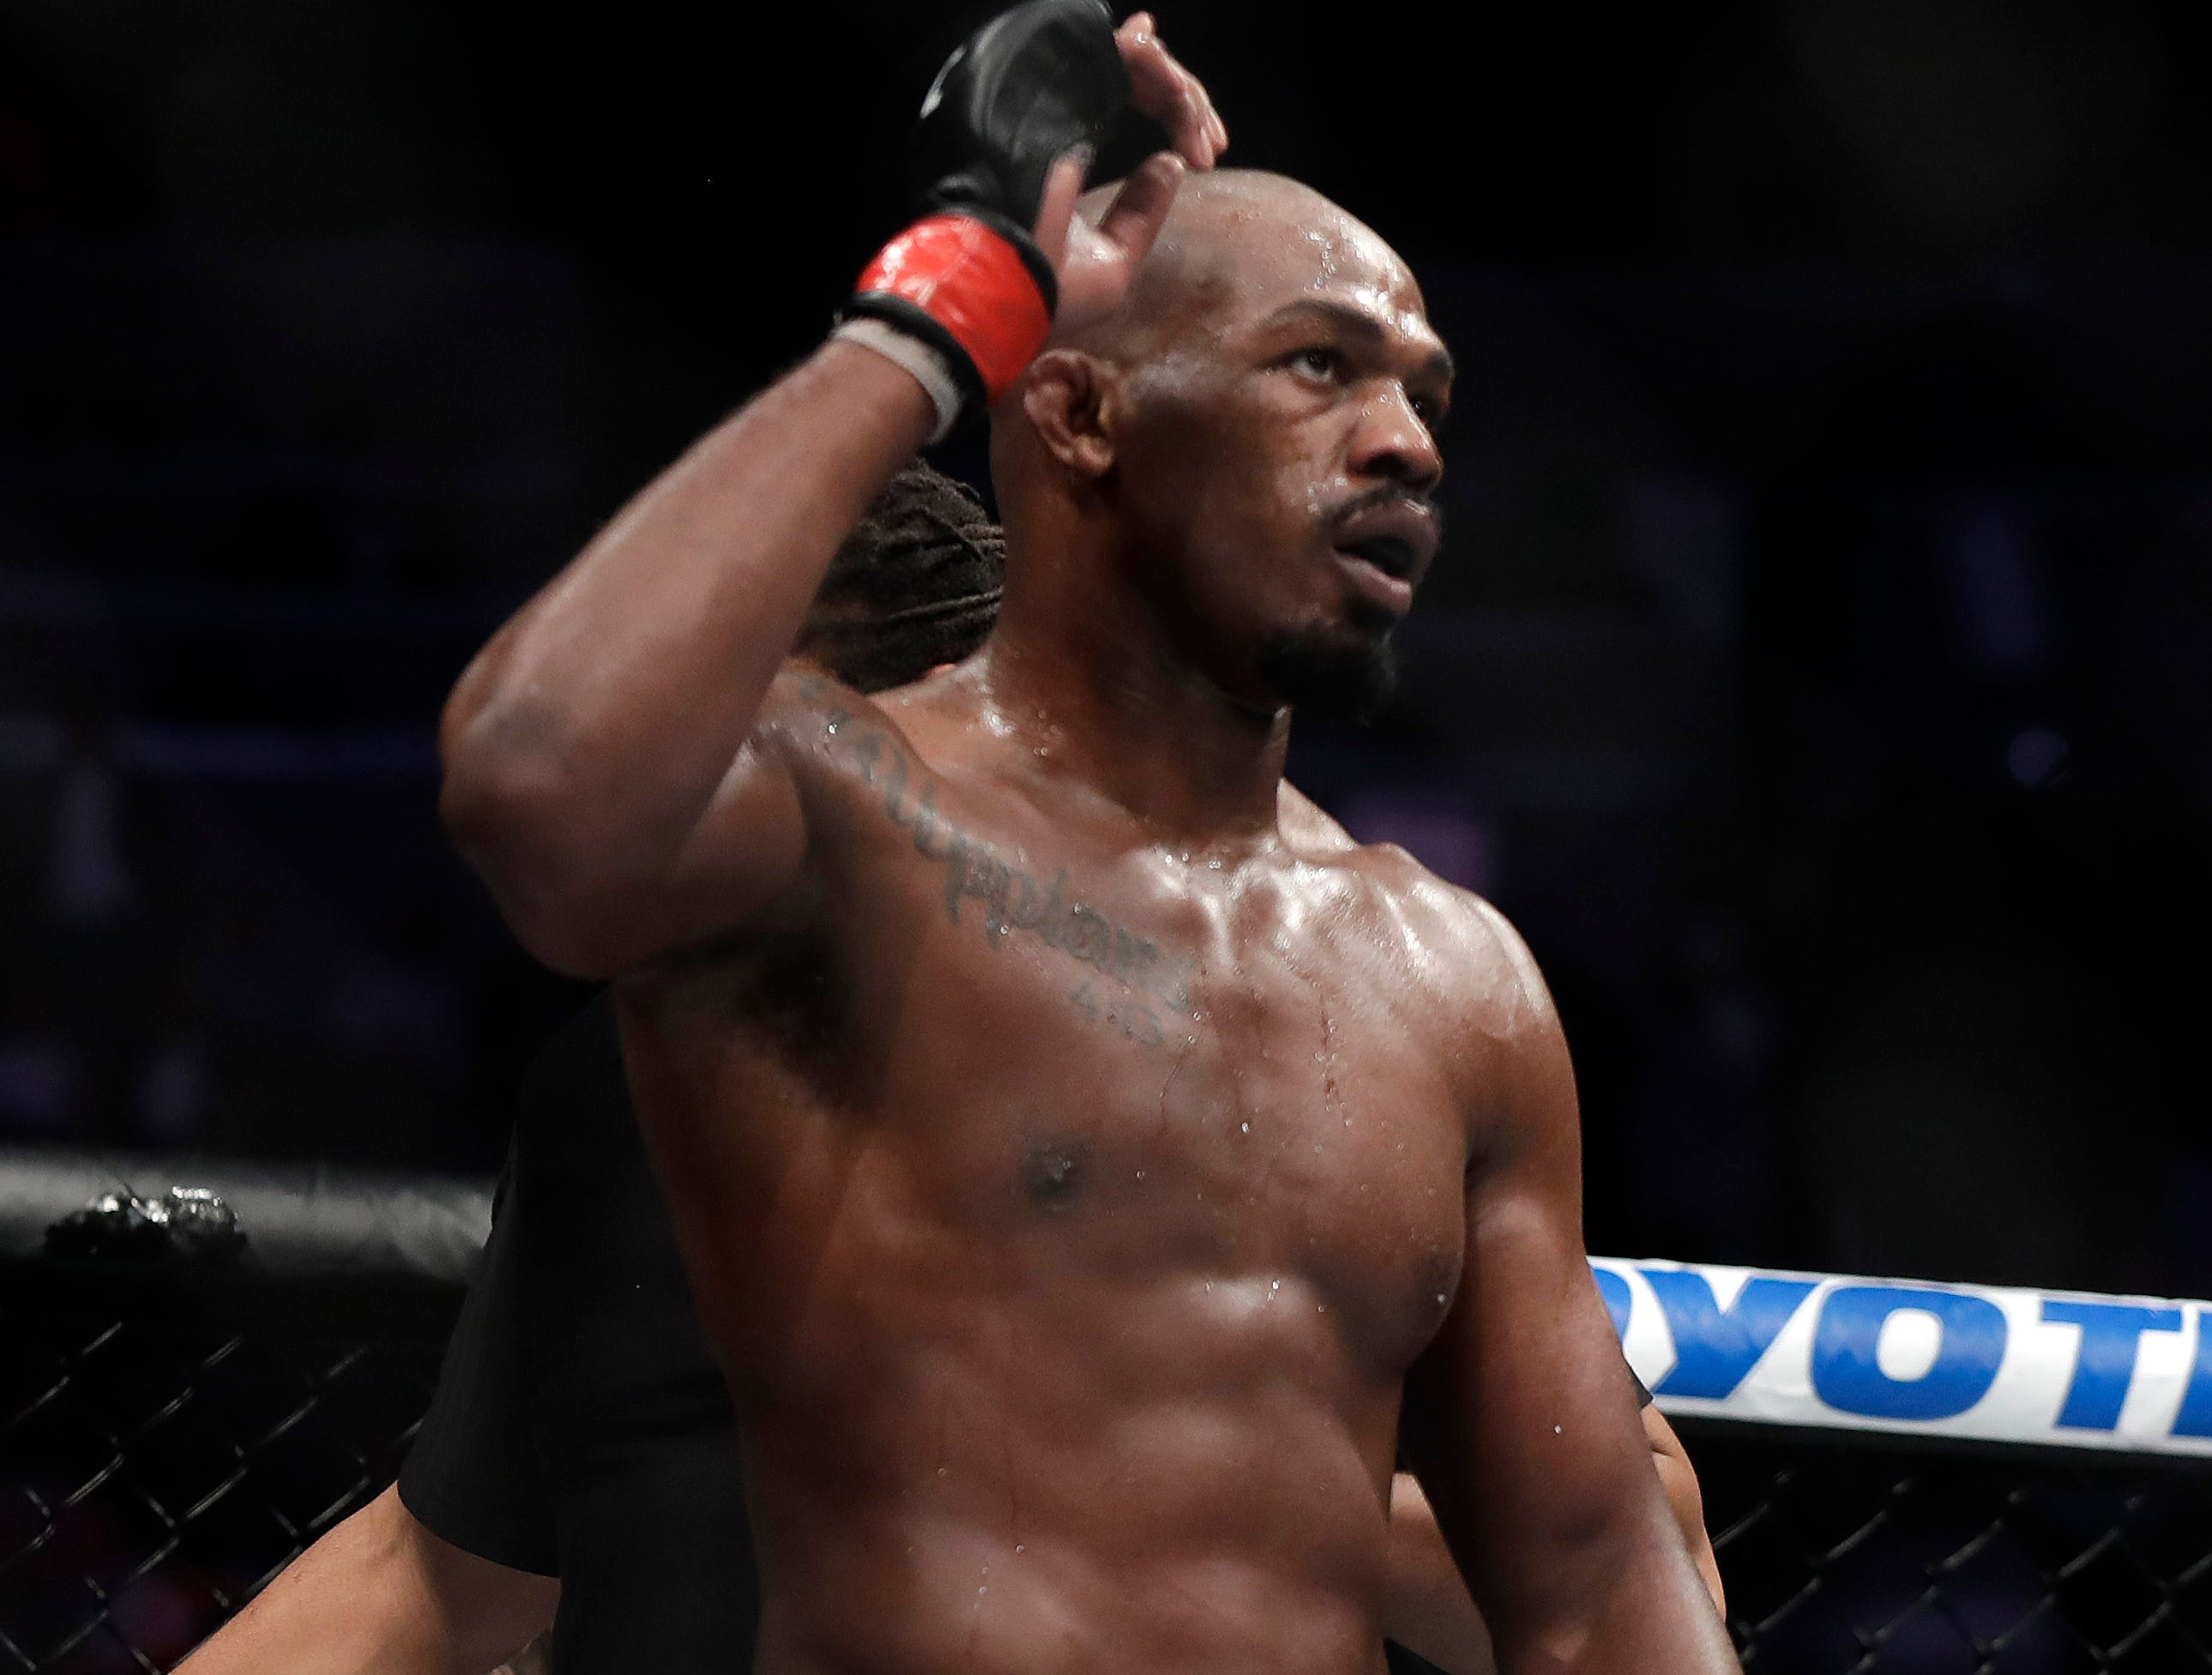 LAS VEGAS, NEVADA - MARCH 02: Jon Jones (L) celebrates after defeating Anthony Smith following their light heavyweight title bout during UFC 235 at T-Mobile Arena on March 02, 2019 in Las Vegas, Nevada. Jones won by unanimous decision.  (Photo by Isaac Brekken/Getty Images)